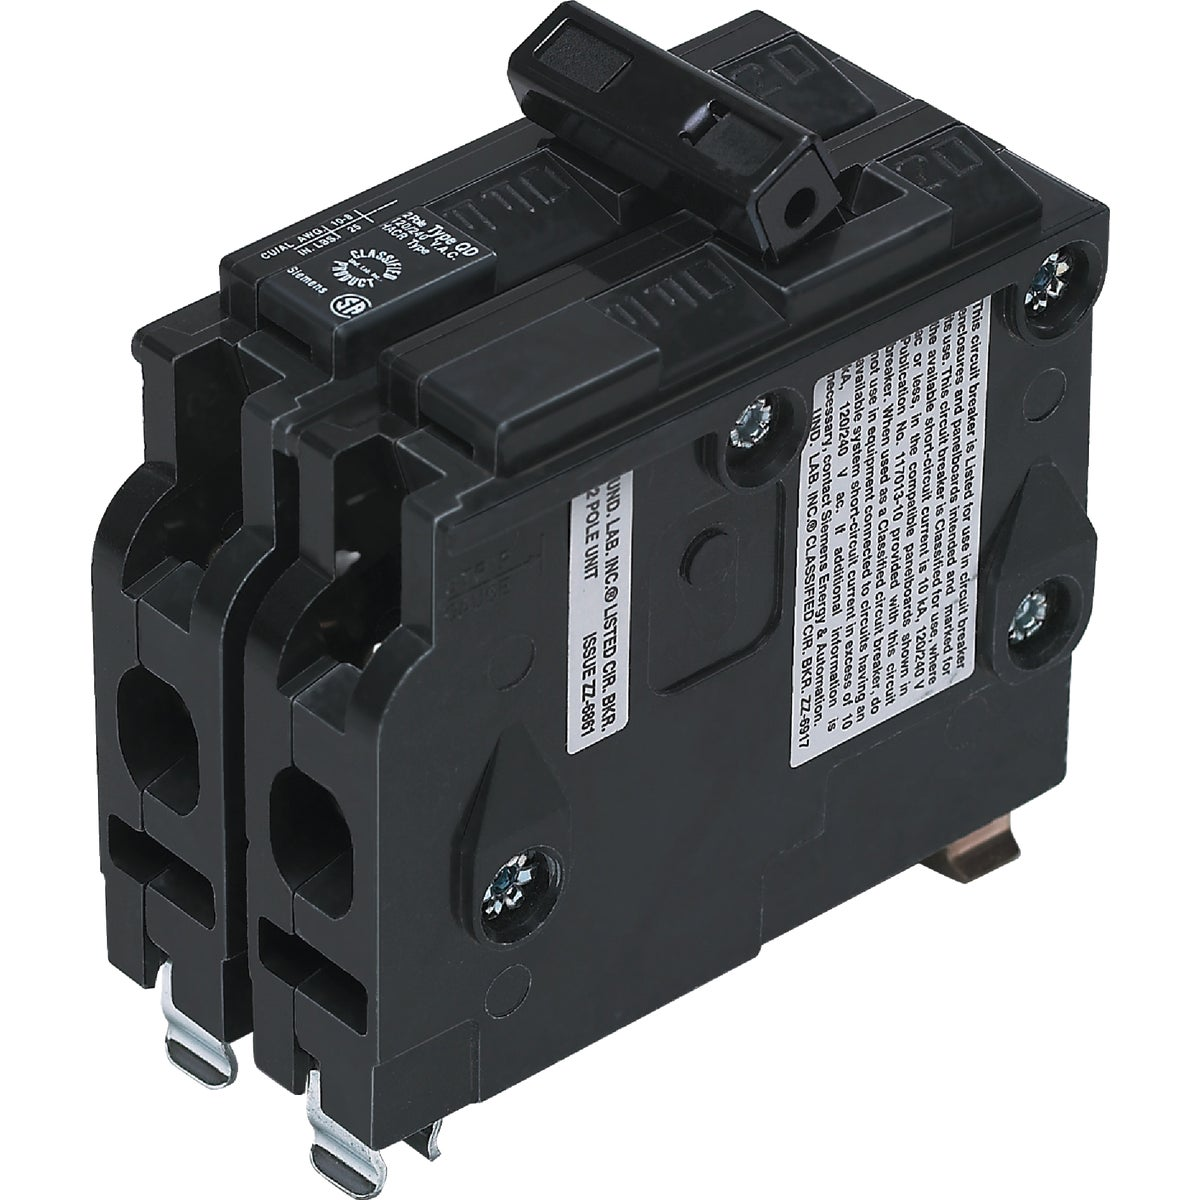 20A 2P CIRCUIT BREAKER - D220 by Connecticut Electric